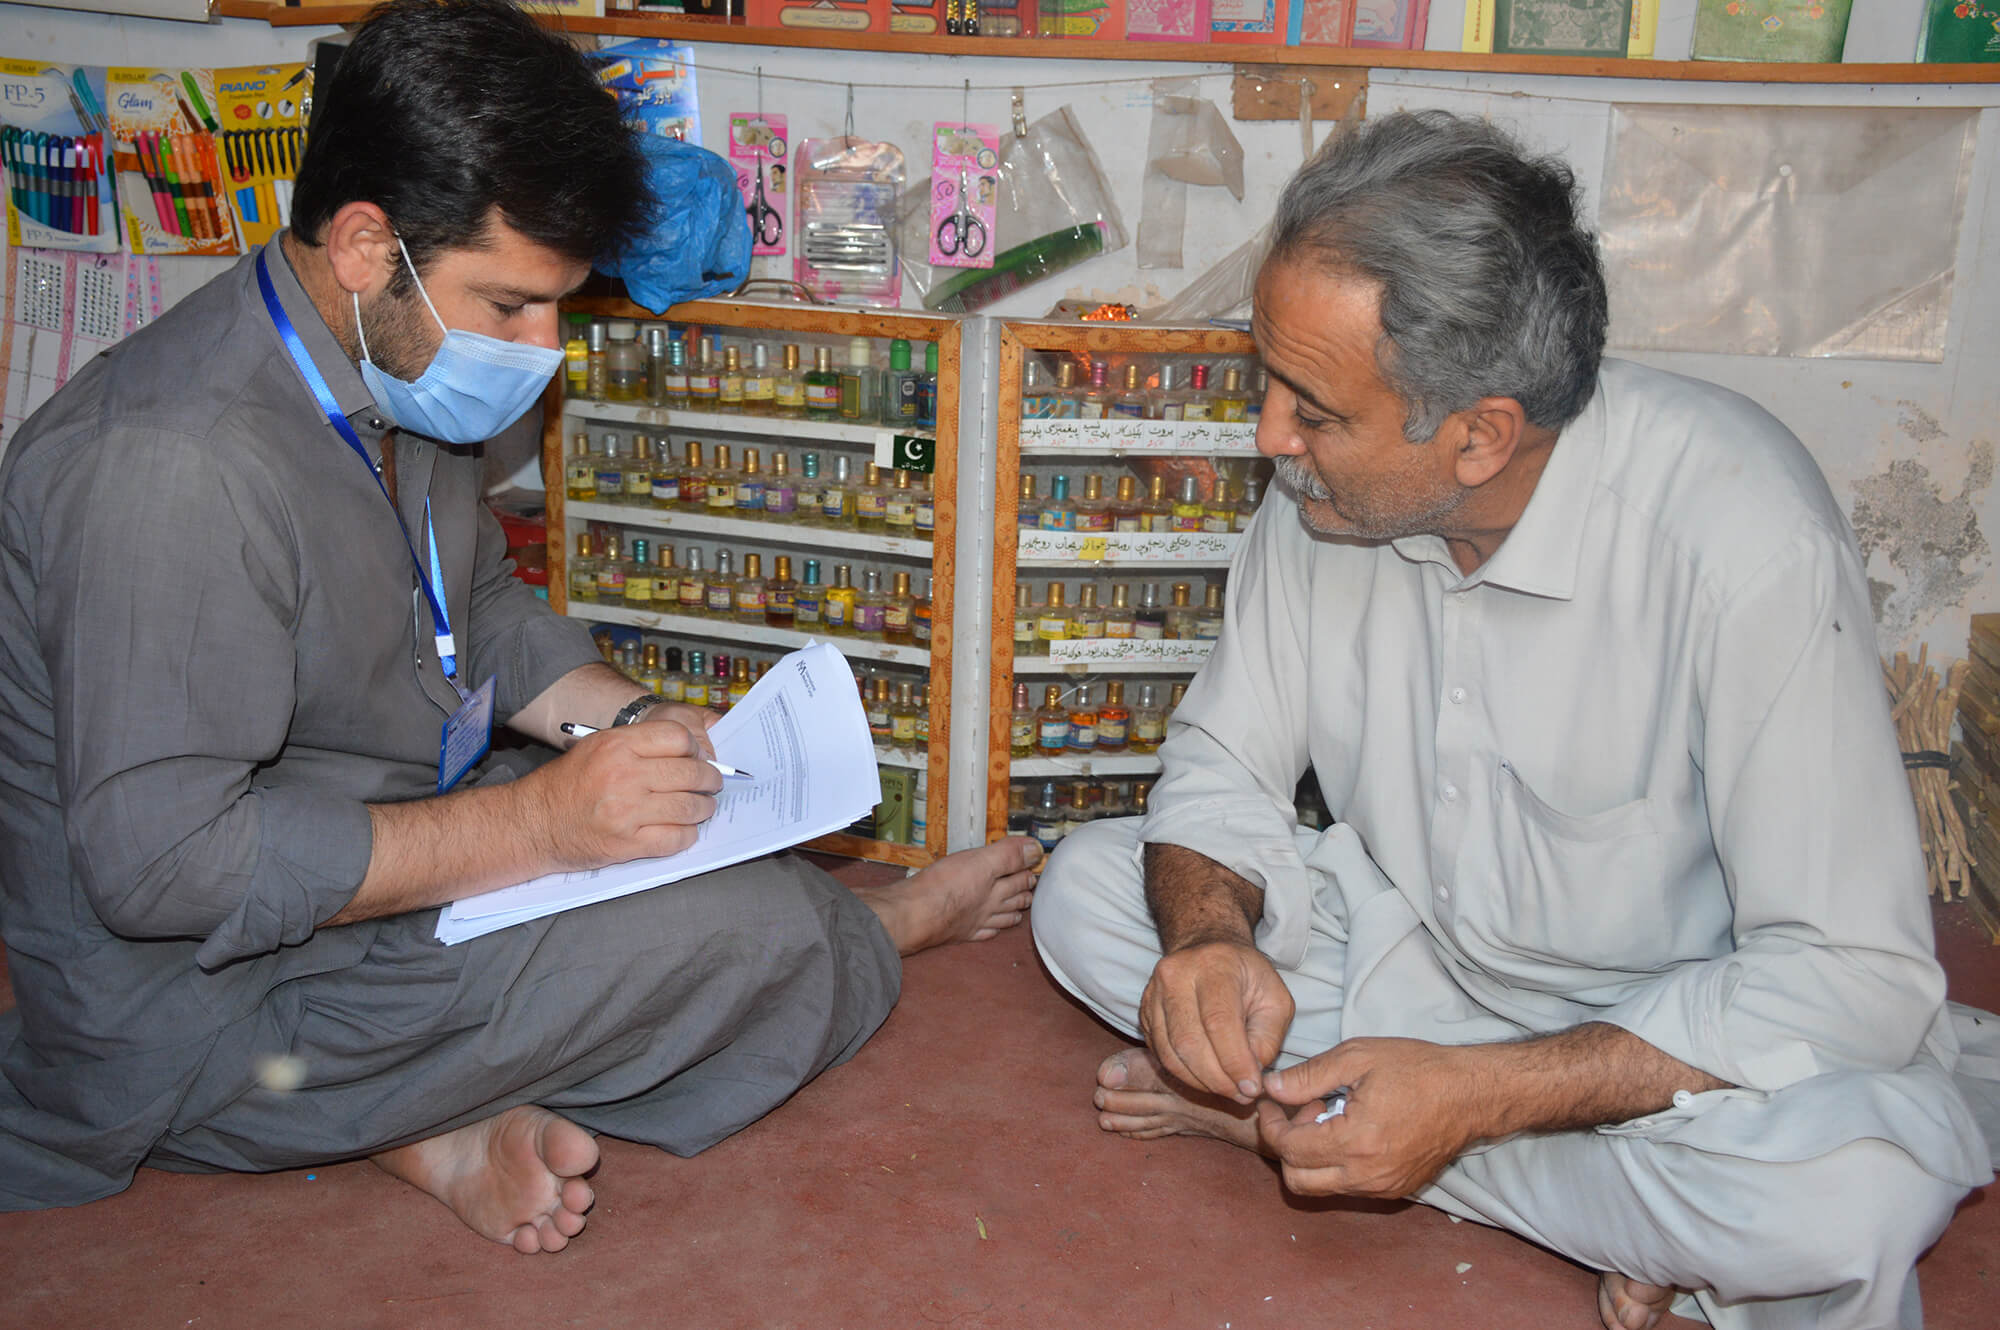 A data collector interviews a male community member.